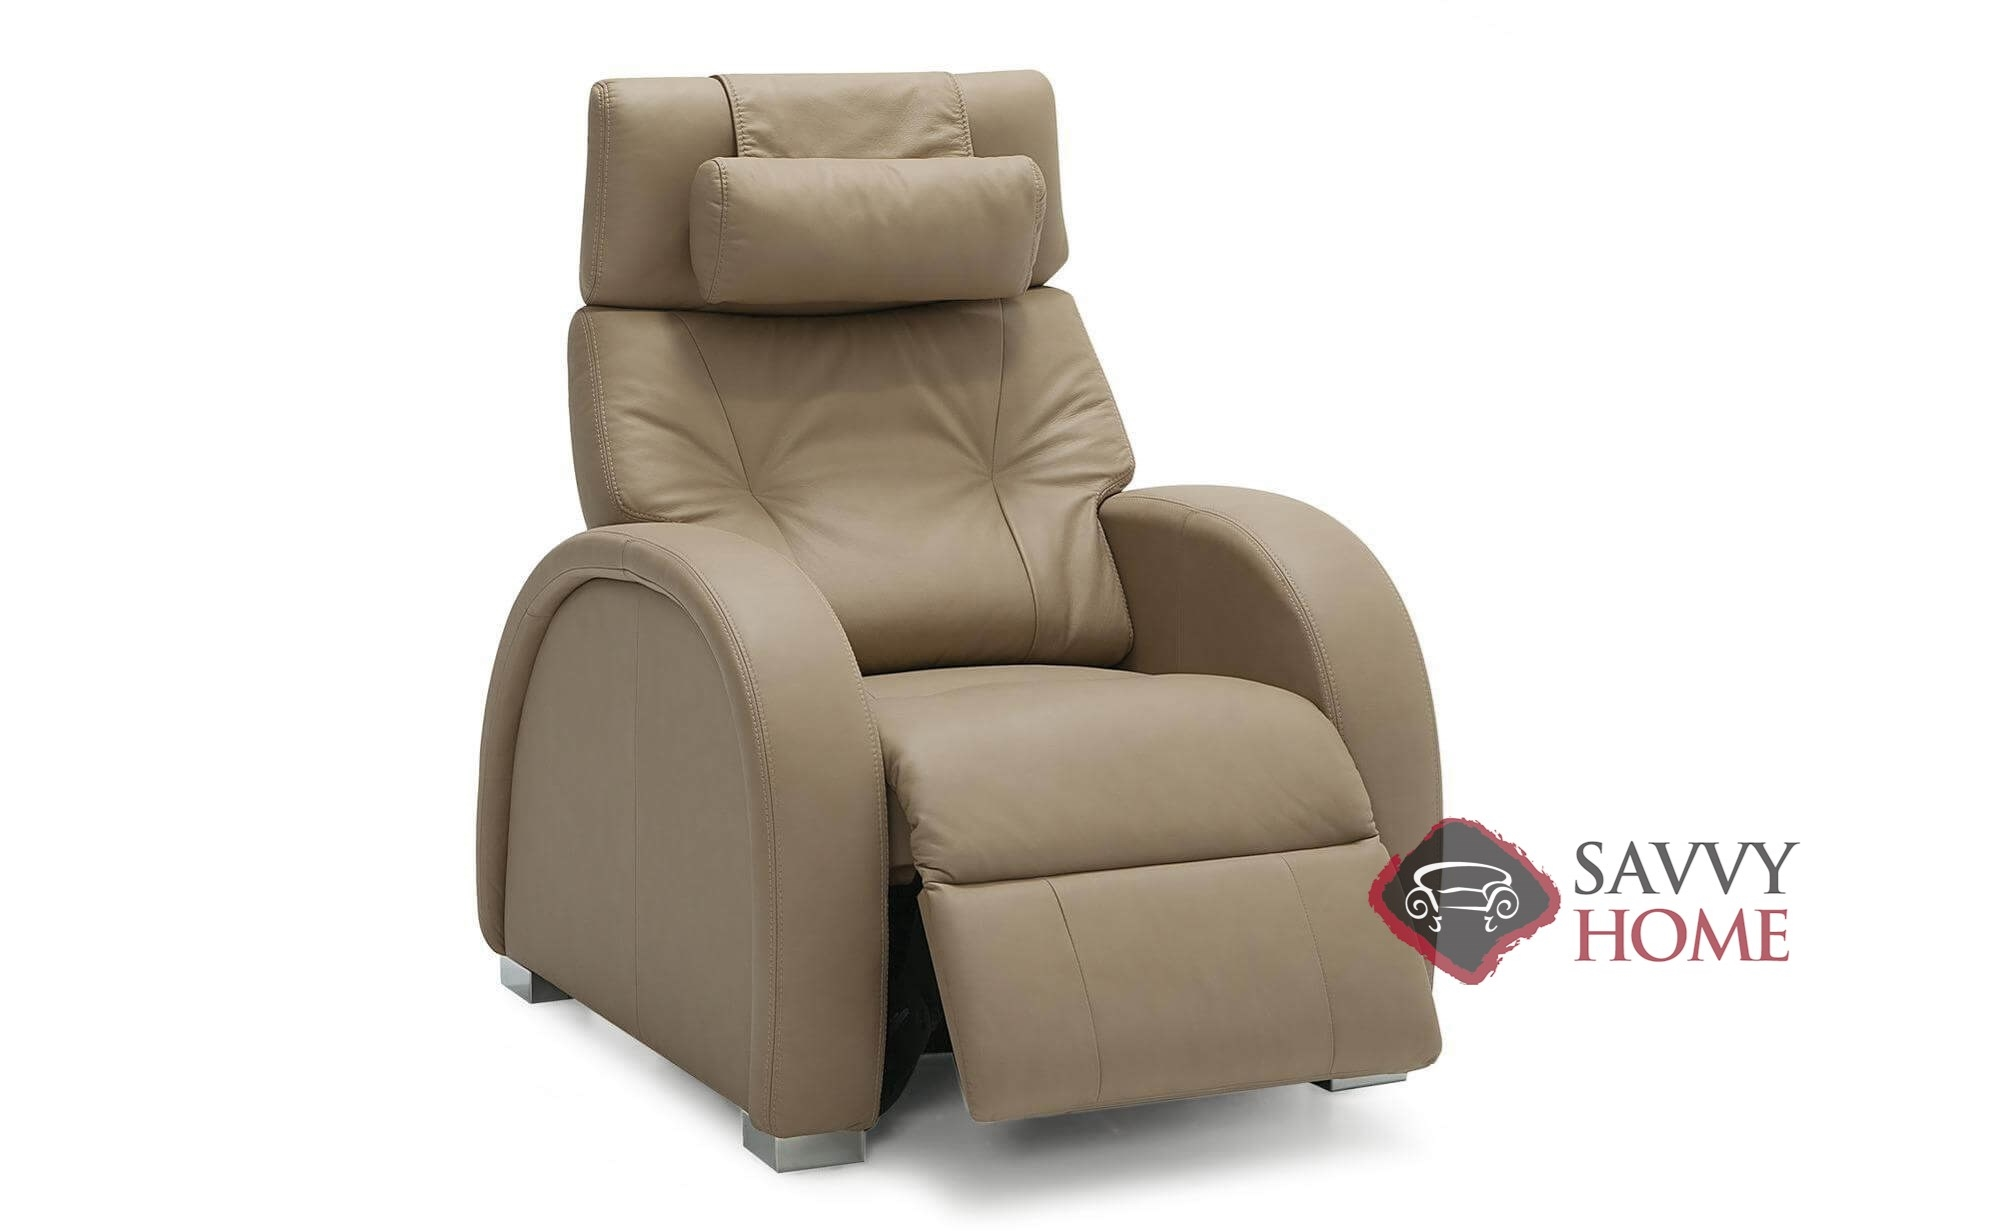 Zg4 By Palliser Leather Reclining Chair By Palliser Is